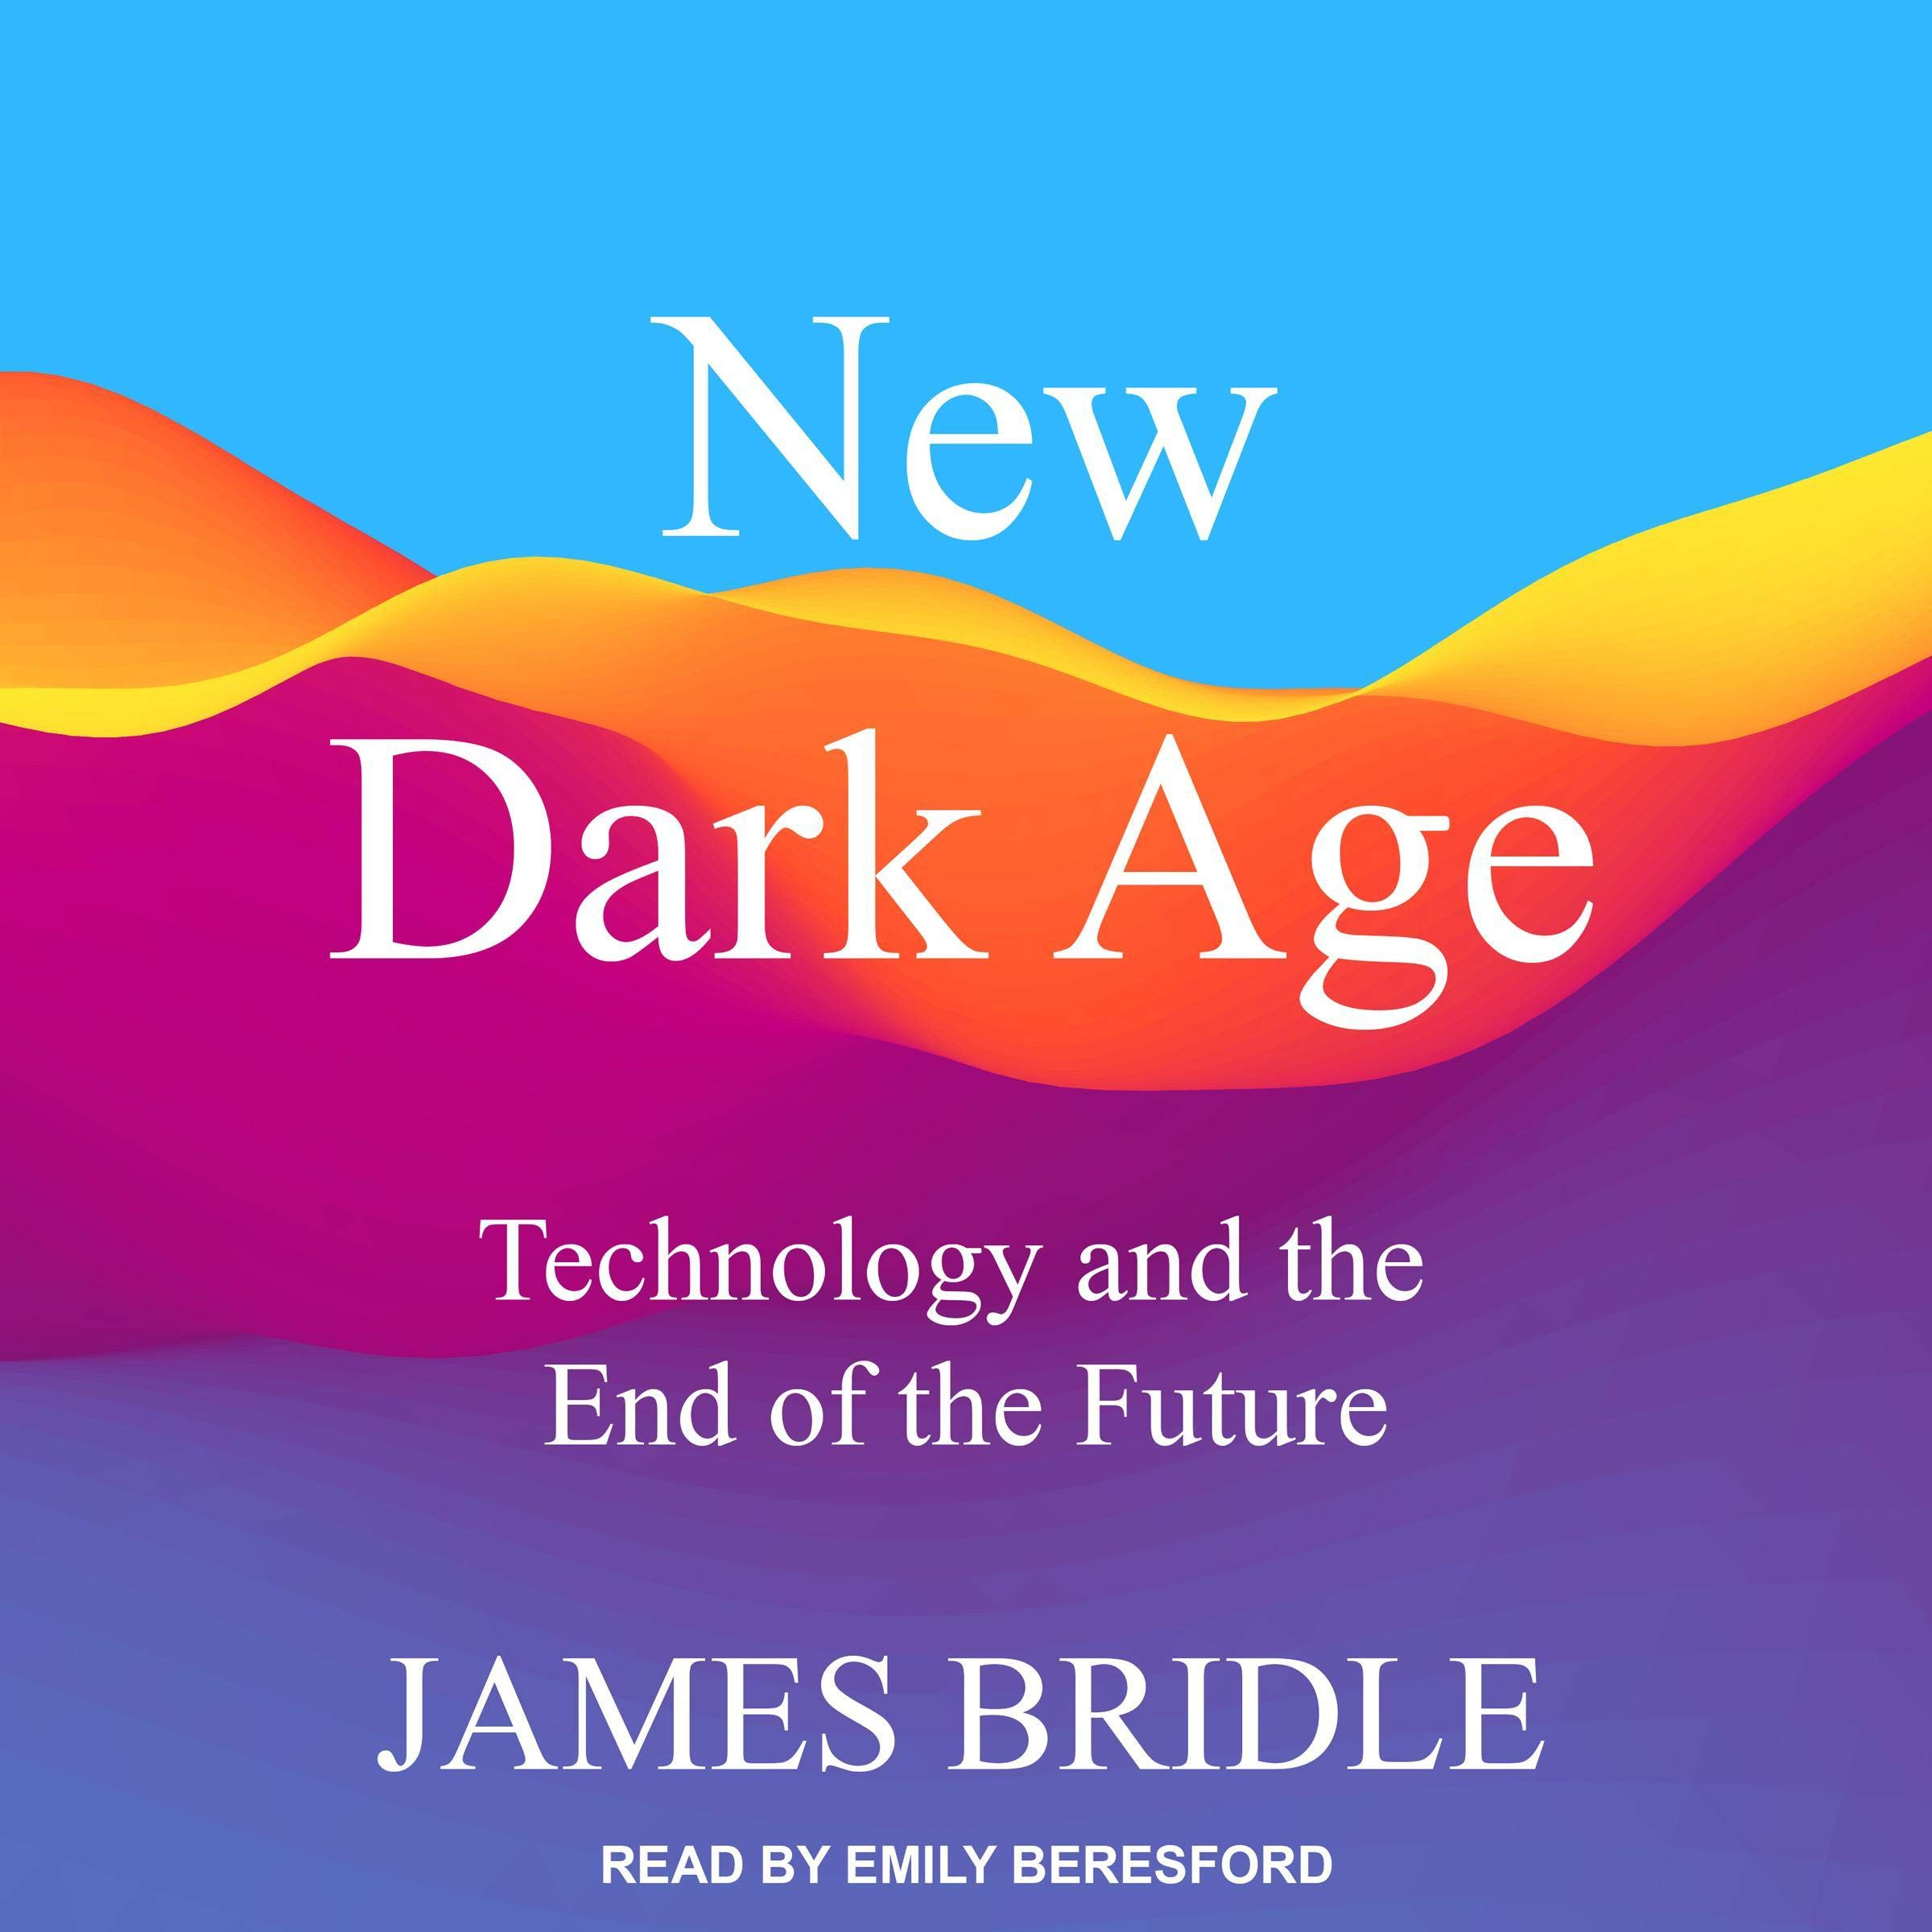 New Dark Age: Technology and the End of the Future